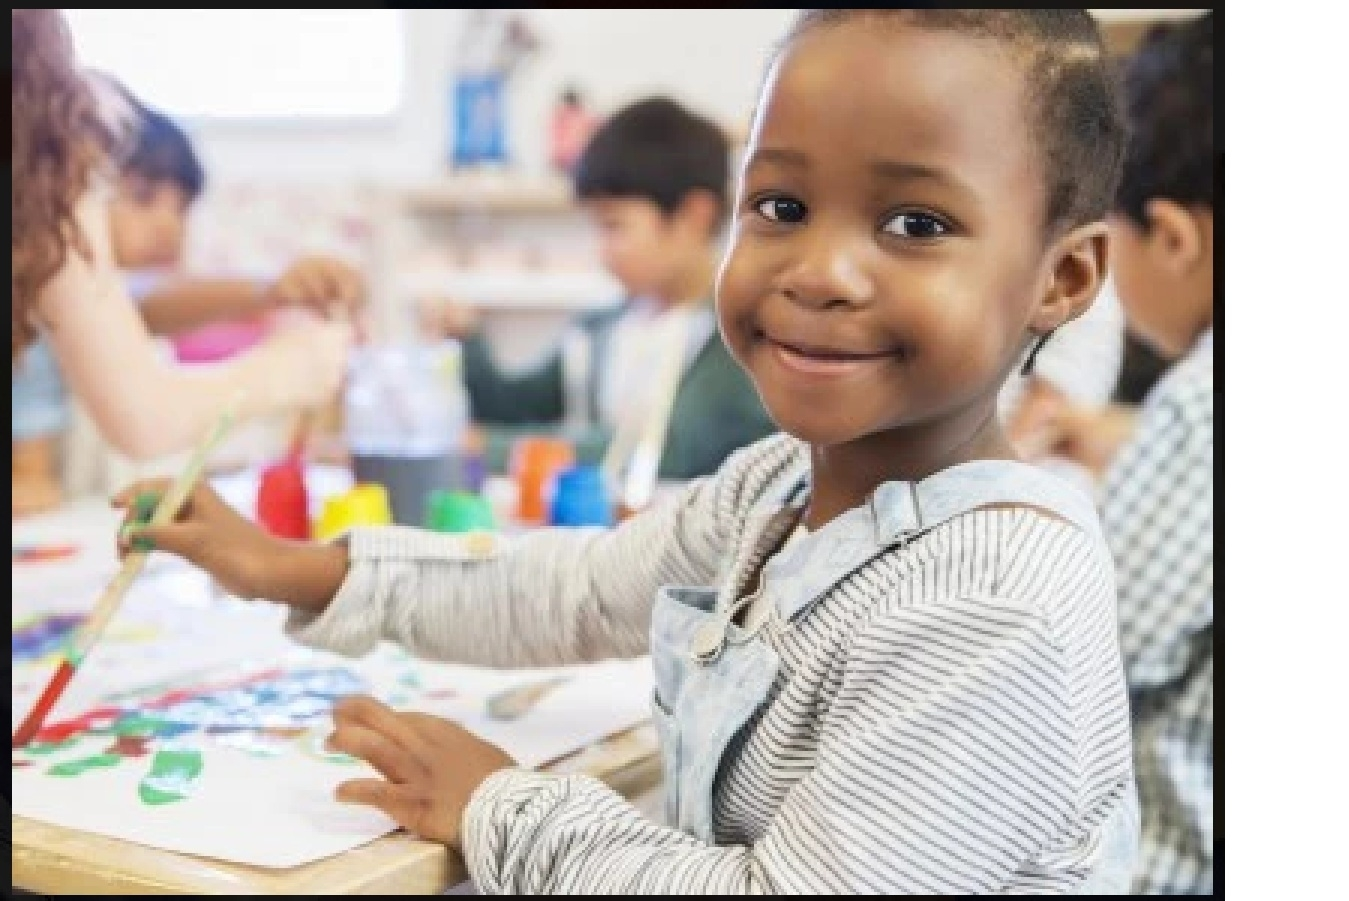 Day Care Center in ON Scarborough M1B 1T6 Precious Gems Christian Home Child Care 96 Dunsfold Dr  (416)335-0469